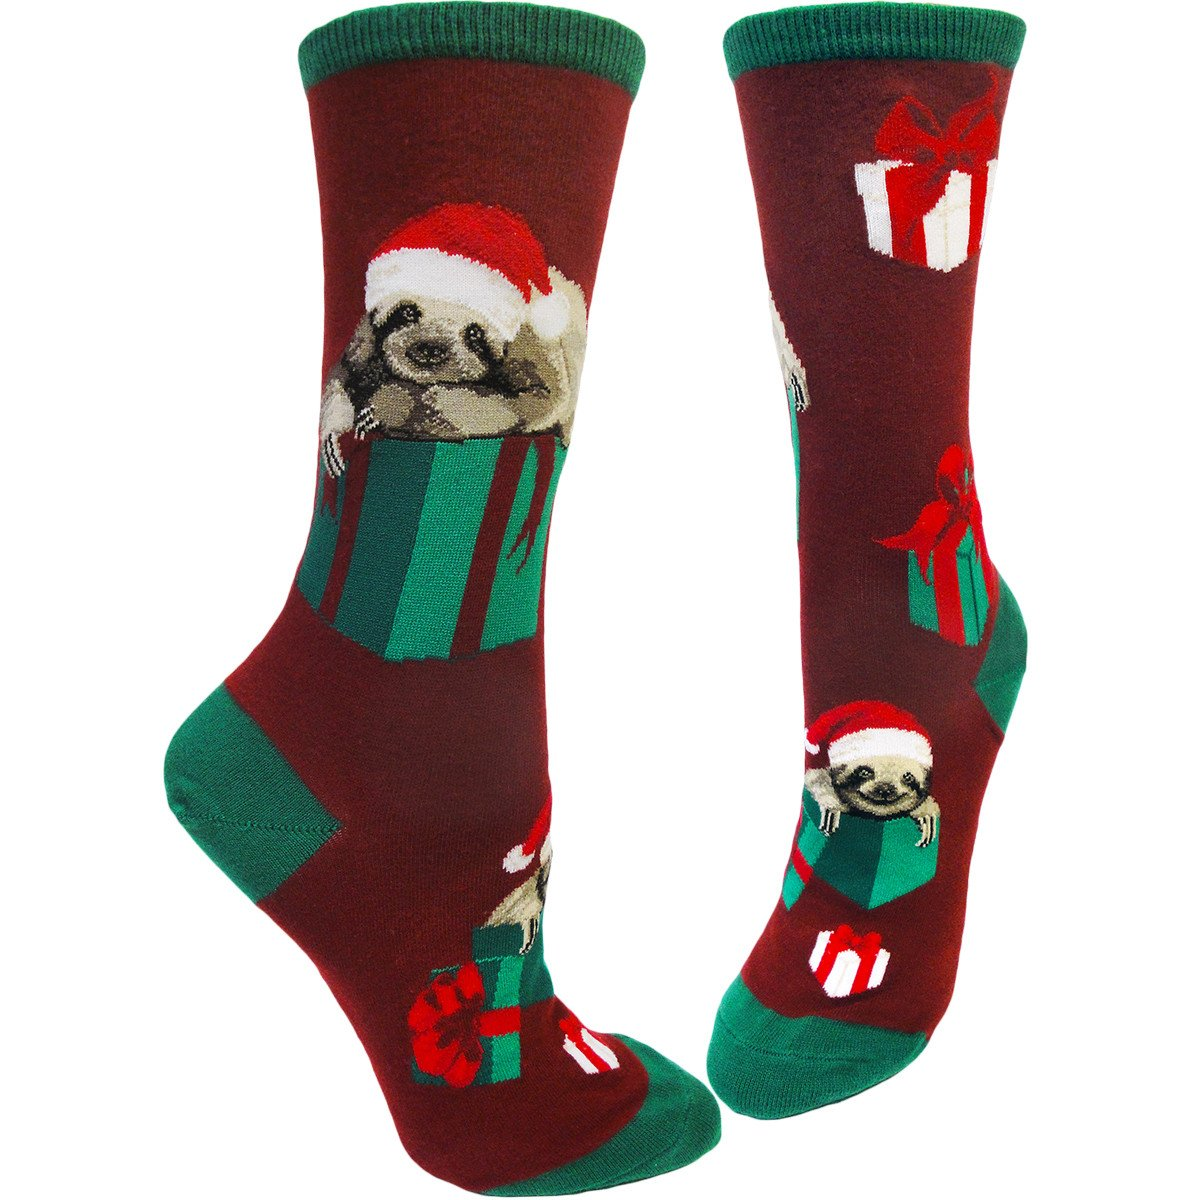 Women's Santa Sloth Crew Socks